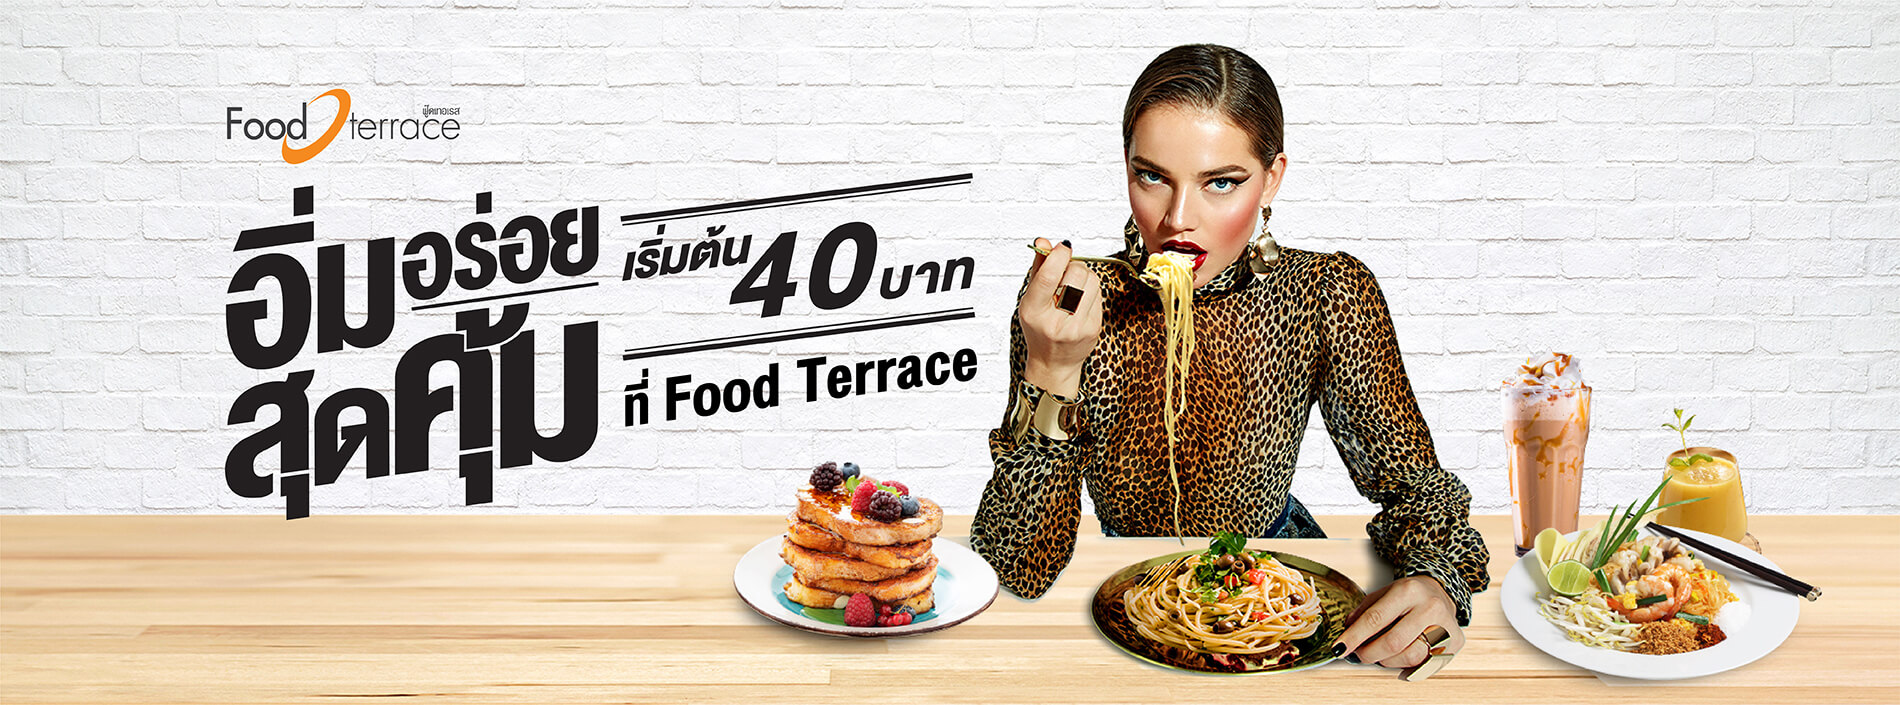 Bangkok Fashion Outlet Food Terrace